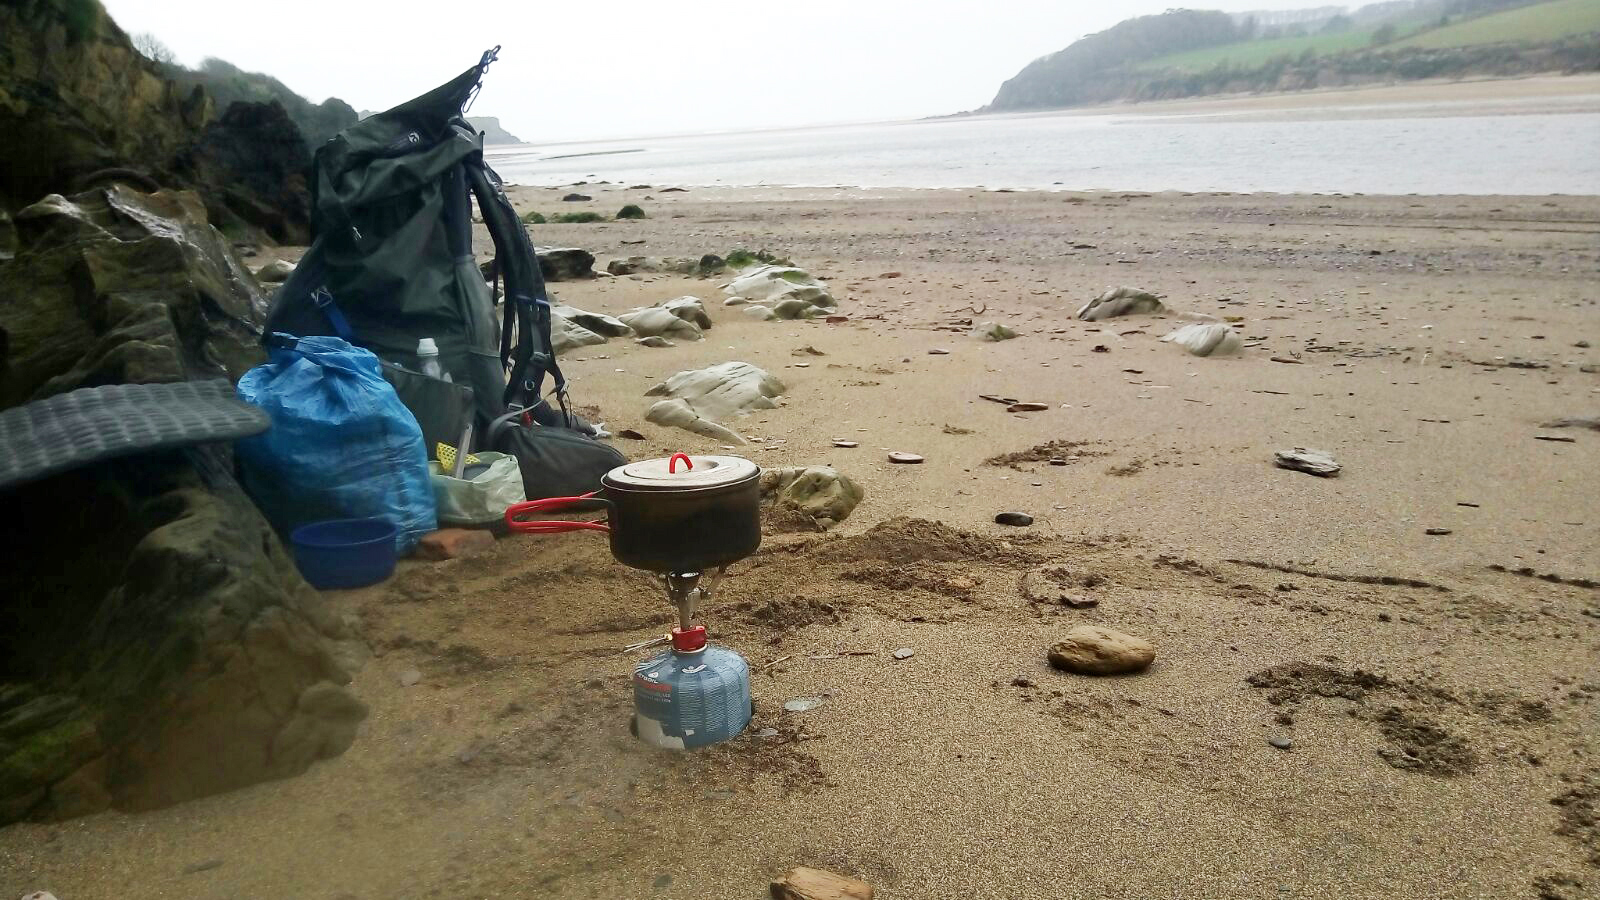 Brewing up on MSR Pocket Rocket 2 while waiting for the tide to drop before crossing the estuary. South West Coast Path